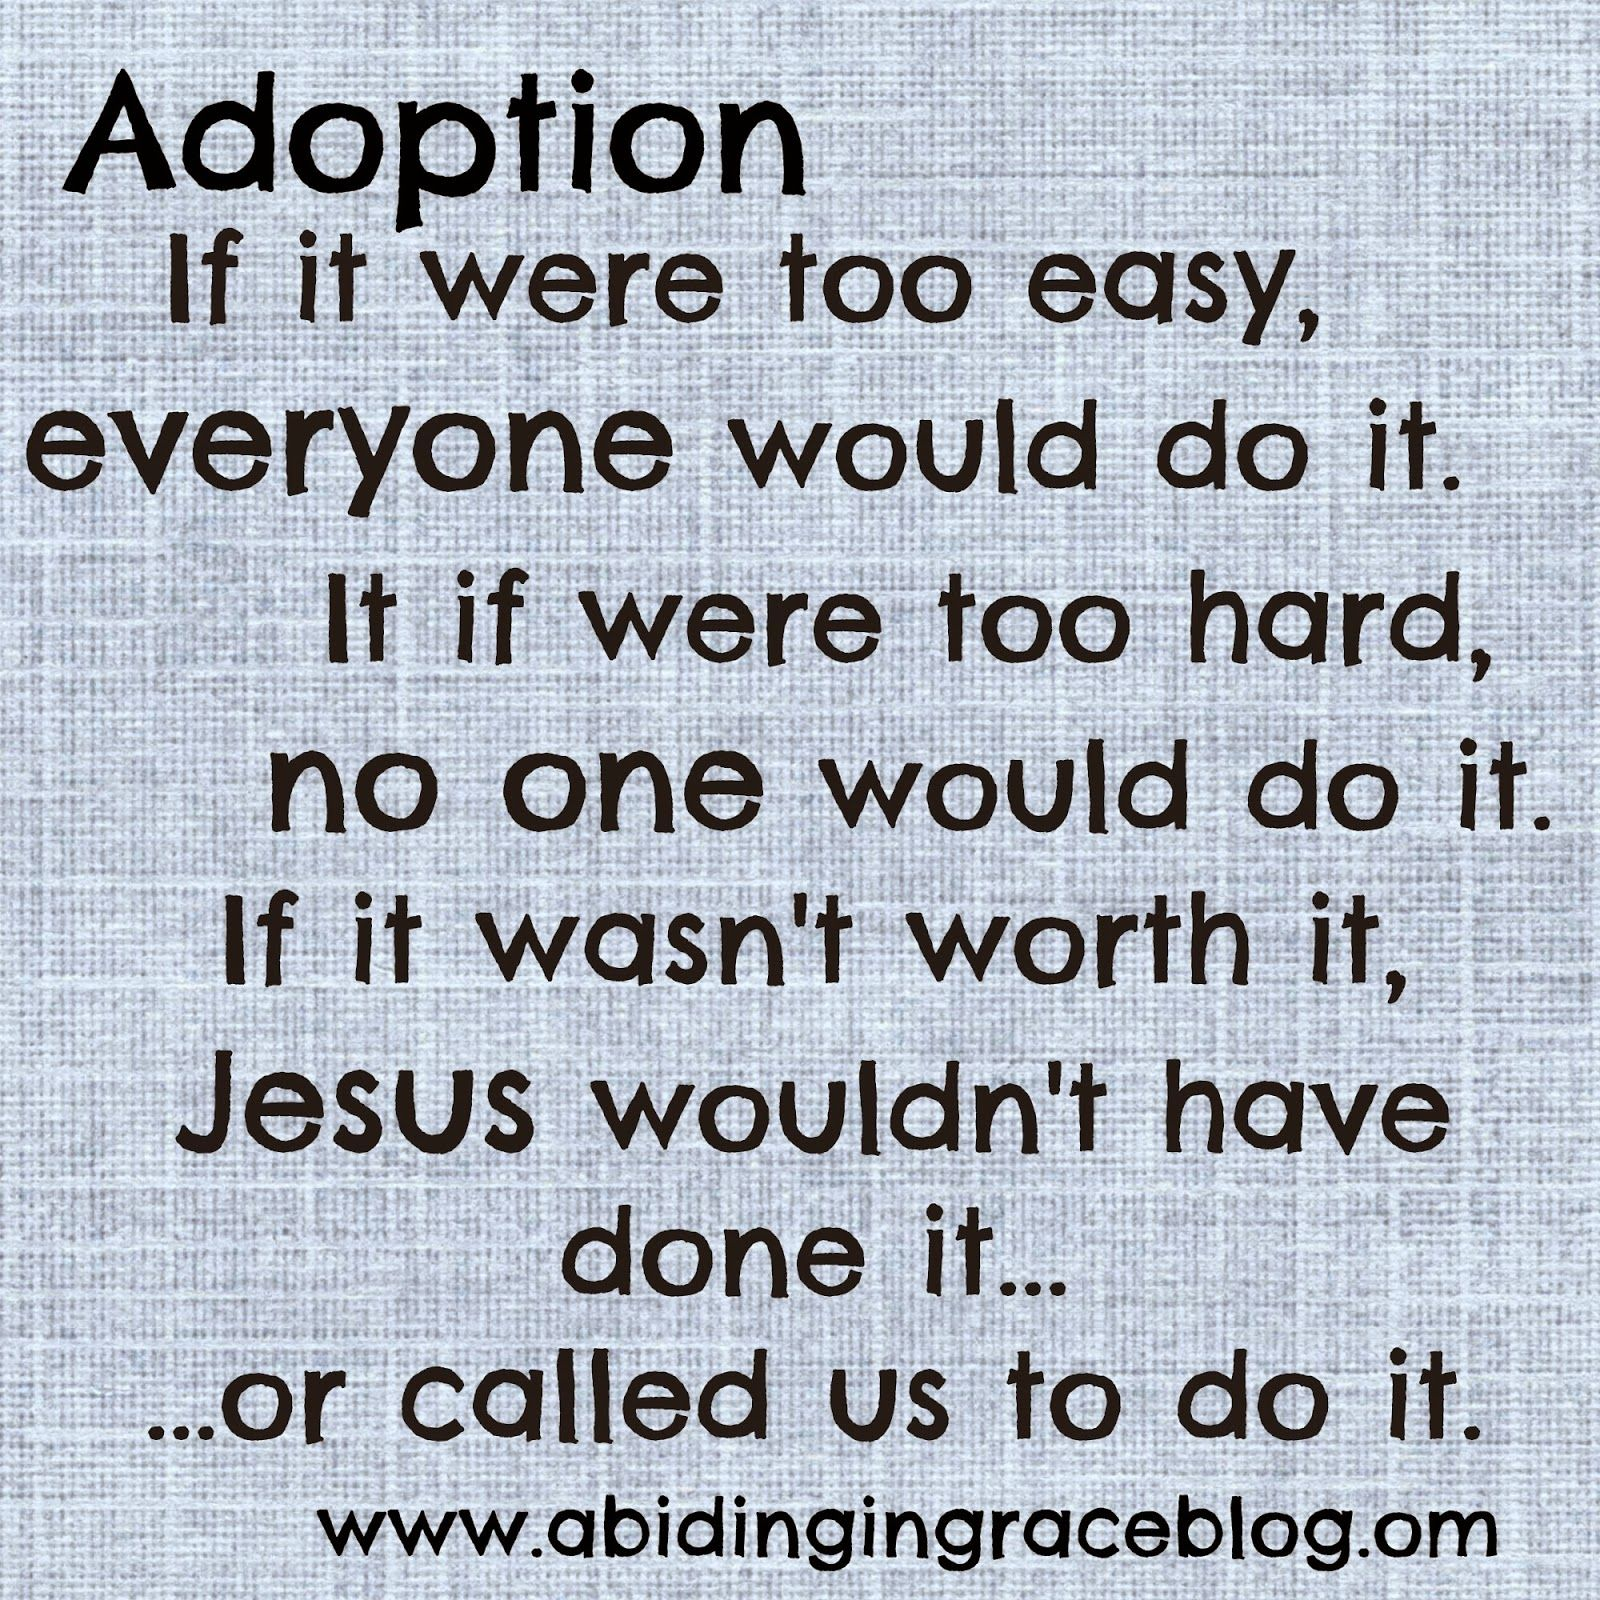 Adoption Quote - Adoption isn't easy. Internationally and Domestic Adoption. www.abidingingraceblog.com #adoptionquotes